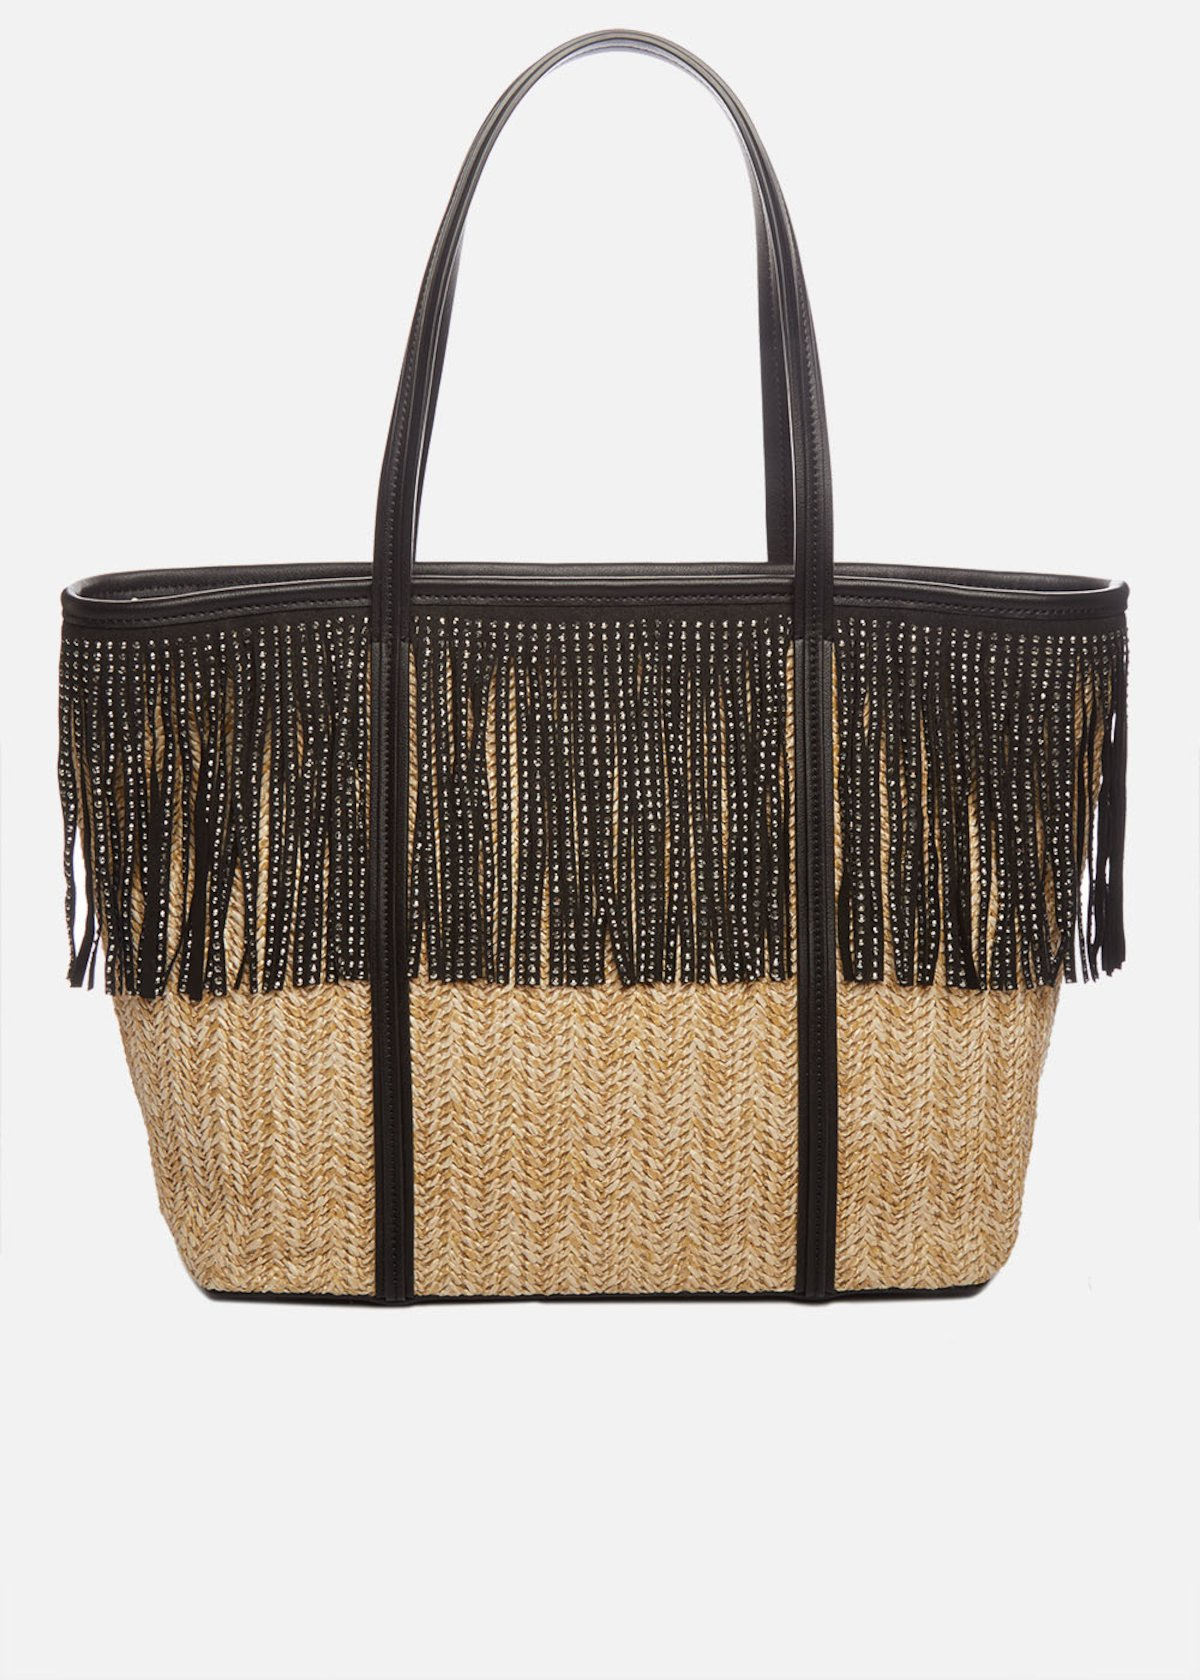 Bradley Shopping bag of raffia with rhinestone fringes and removable shoulder strap